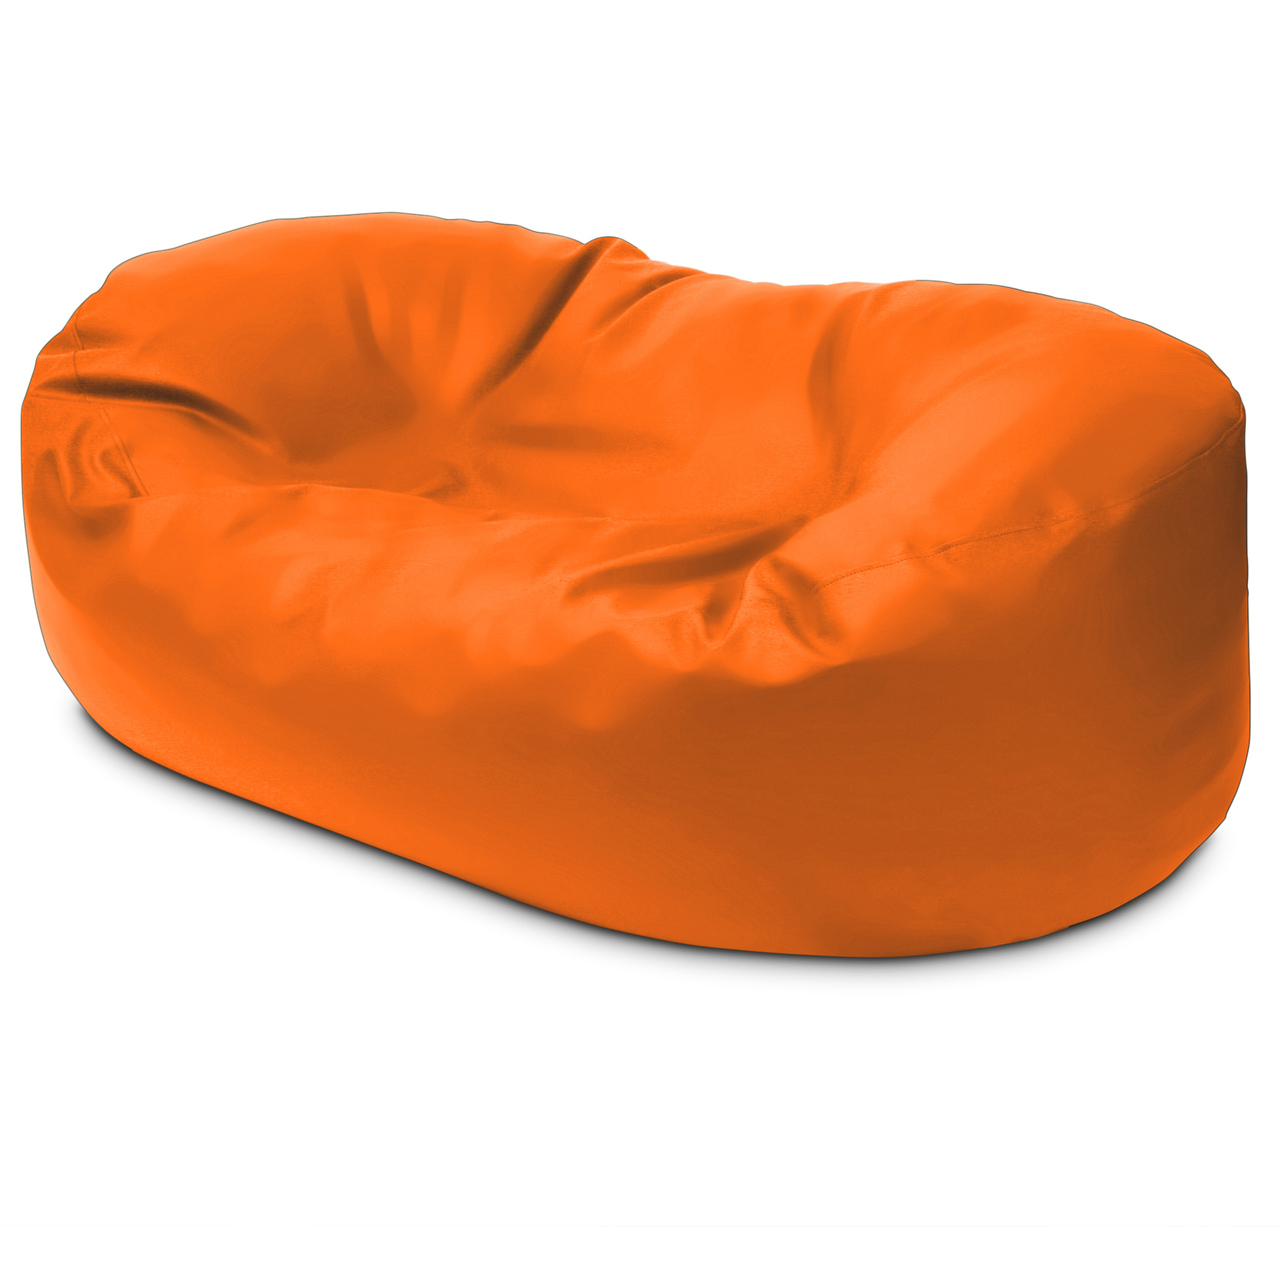 Classic 2m Couch in orange